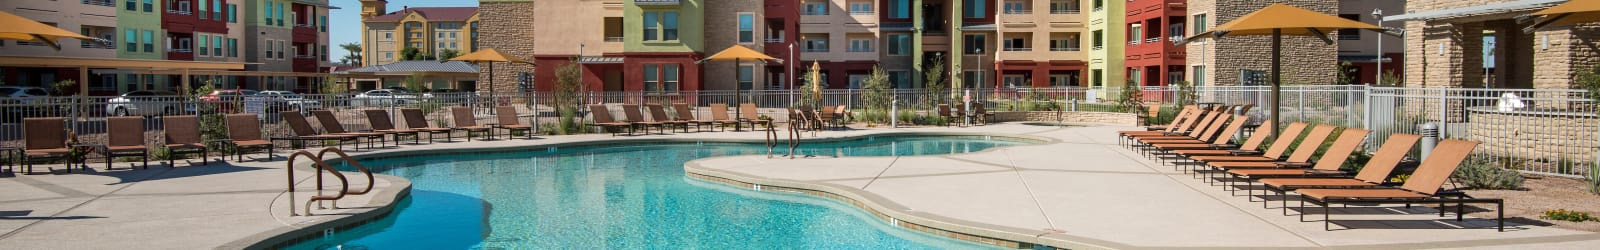 Amenities at Southern Avenue Villas in Mesa, Arizona